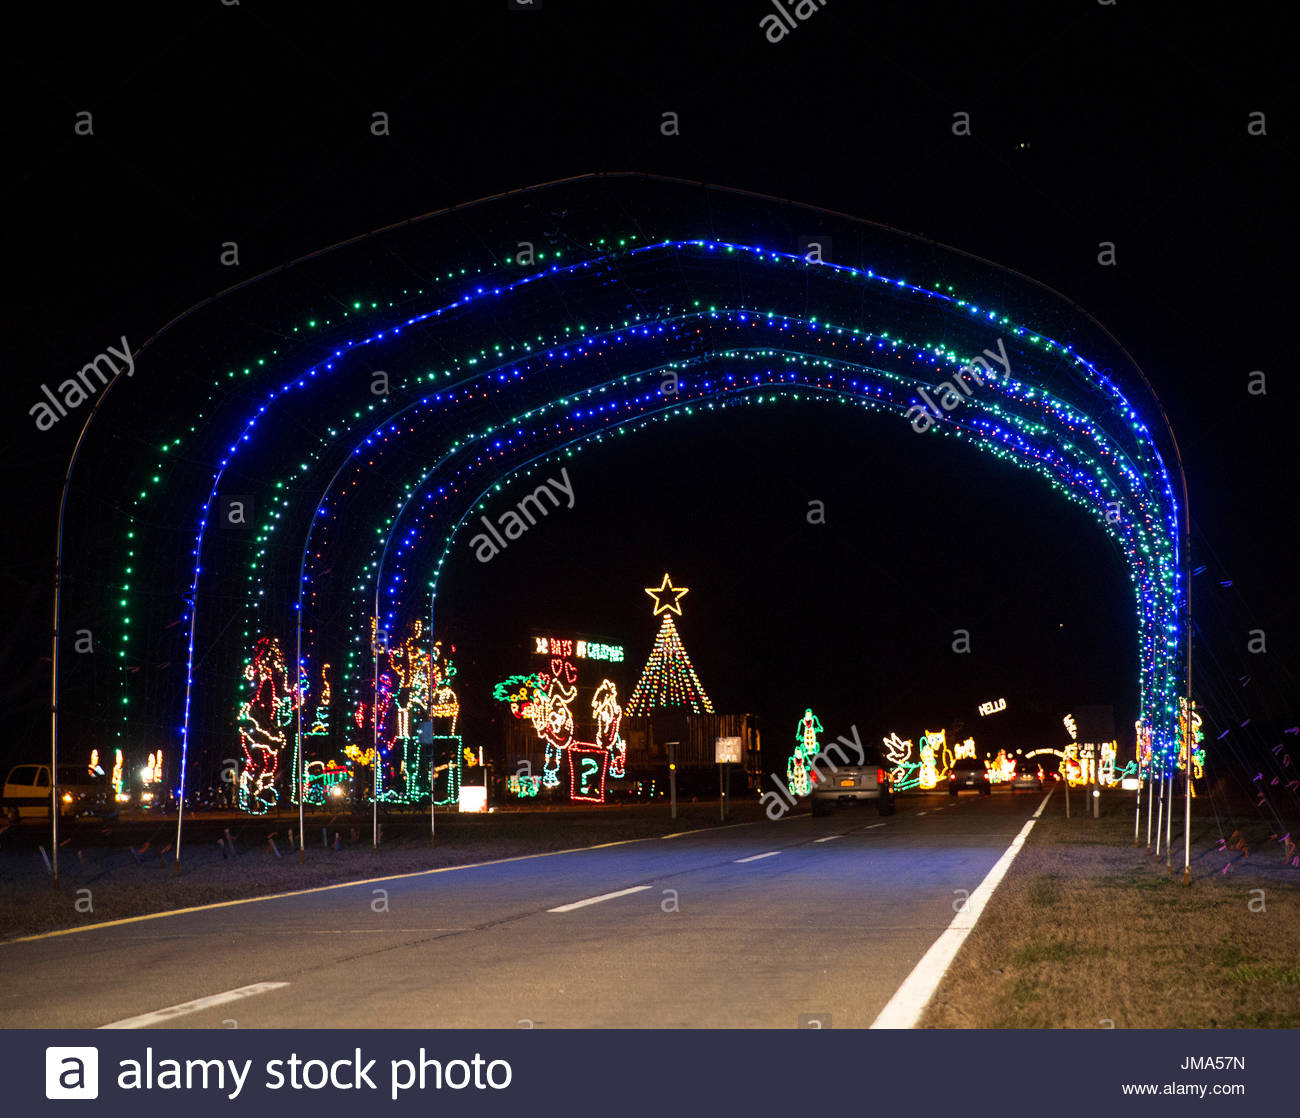 2017 jones beach holiday light spectacular a sampling of - Jones Beach Christmas Light Show